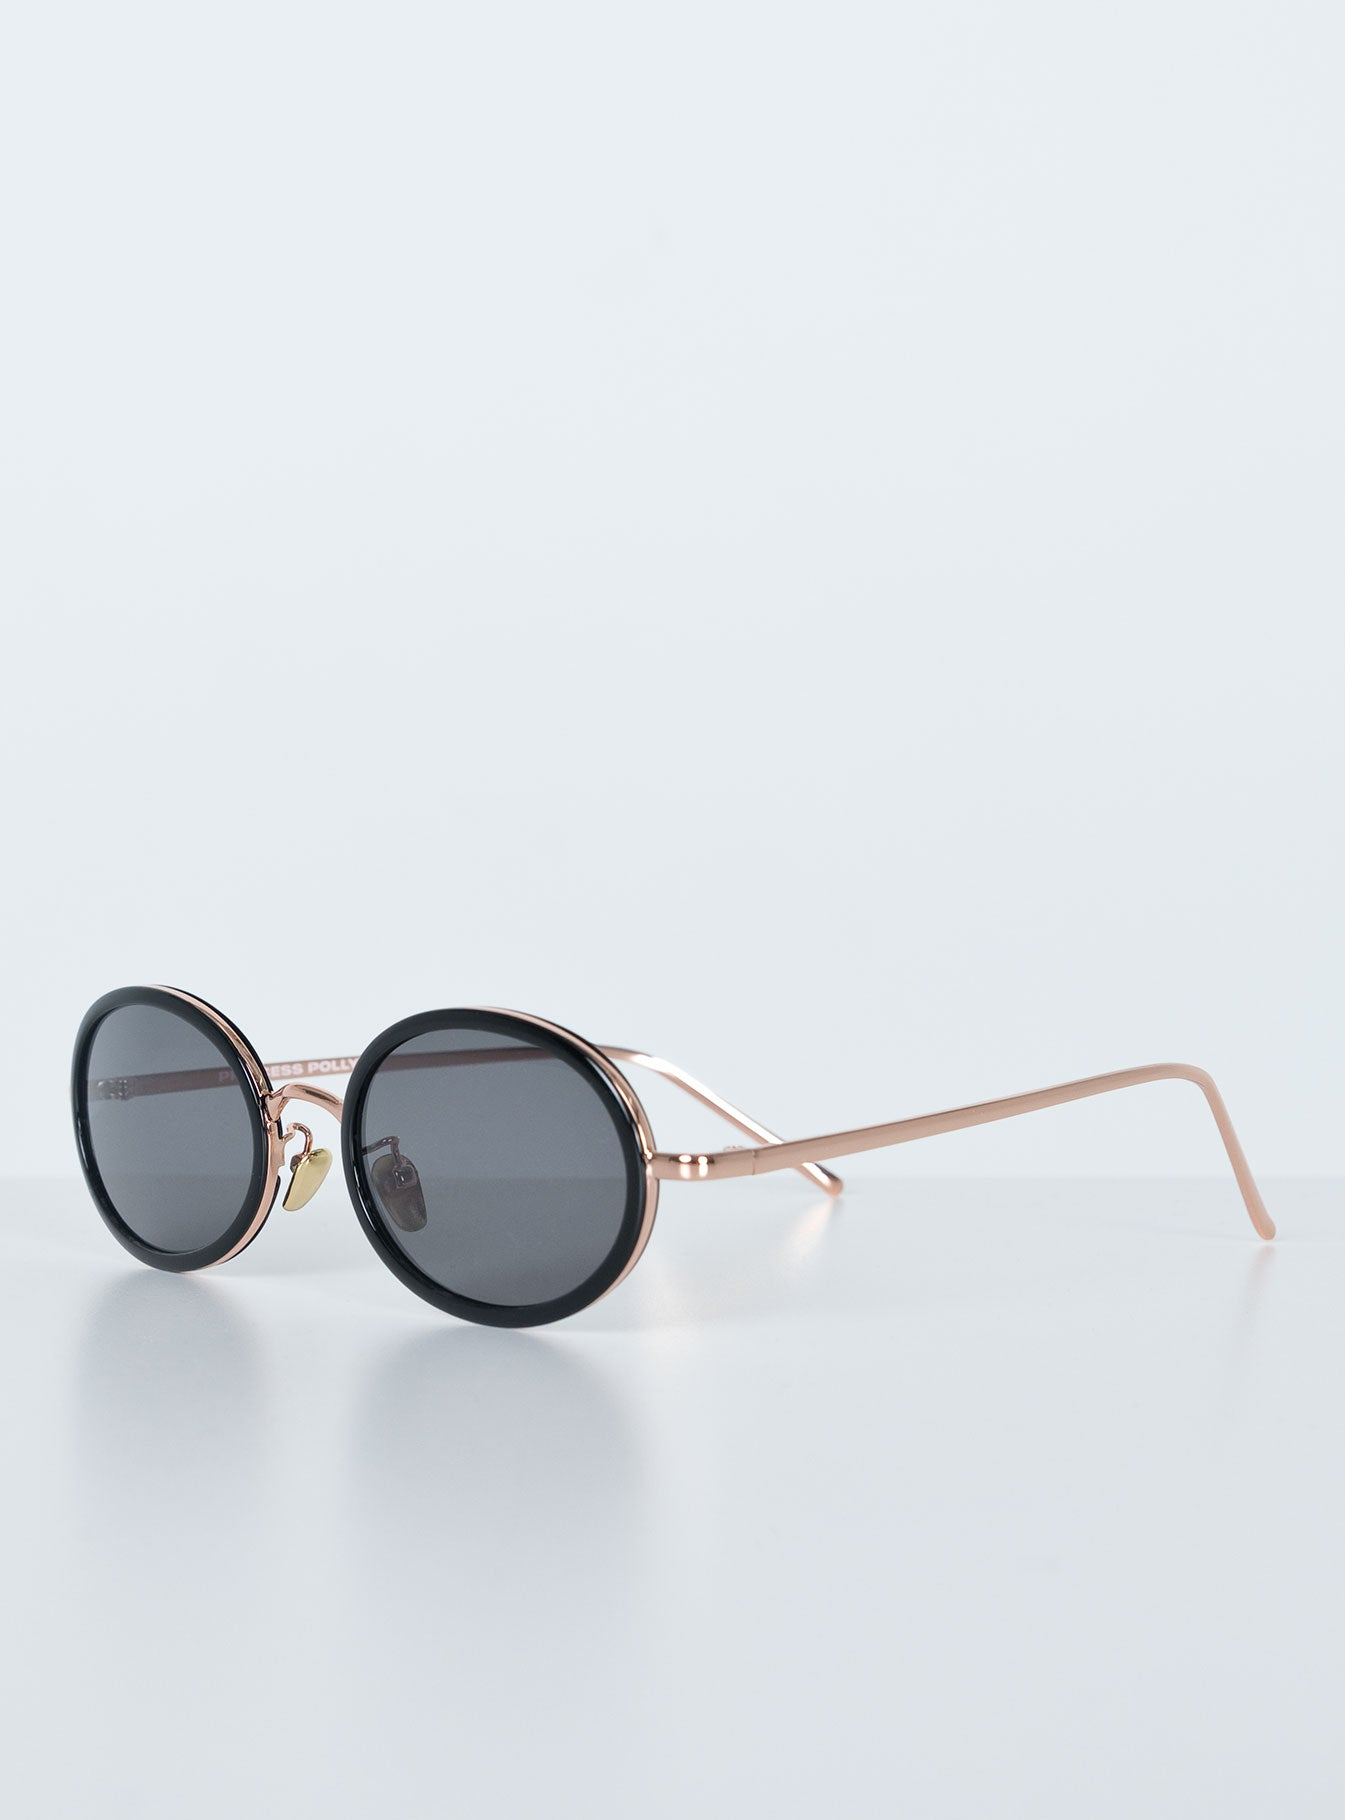 Metz Sunglasses